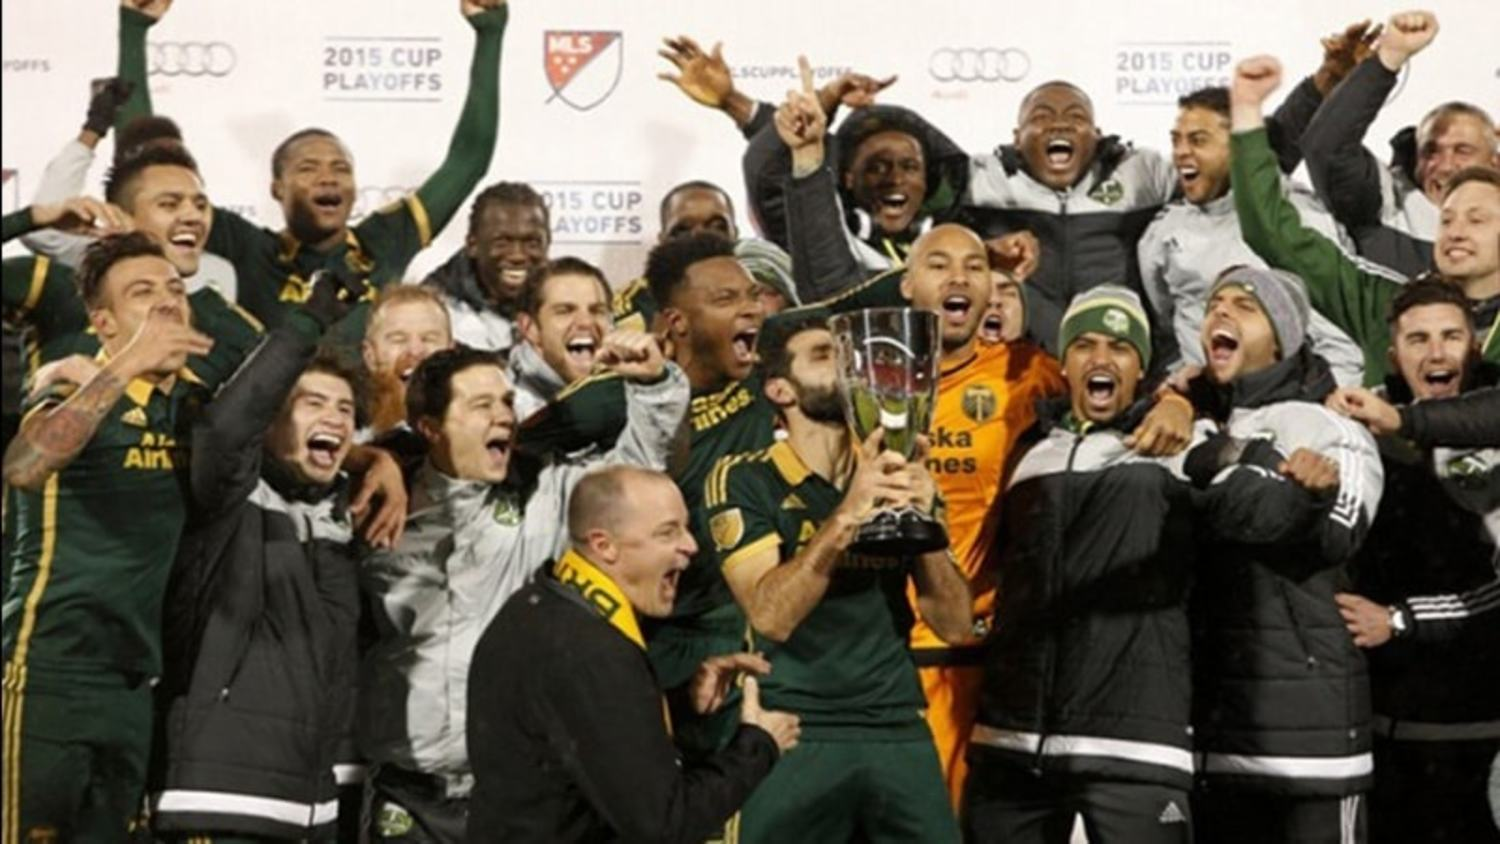 Twitter Reacts to Thrilling MLS Cup!